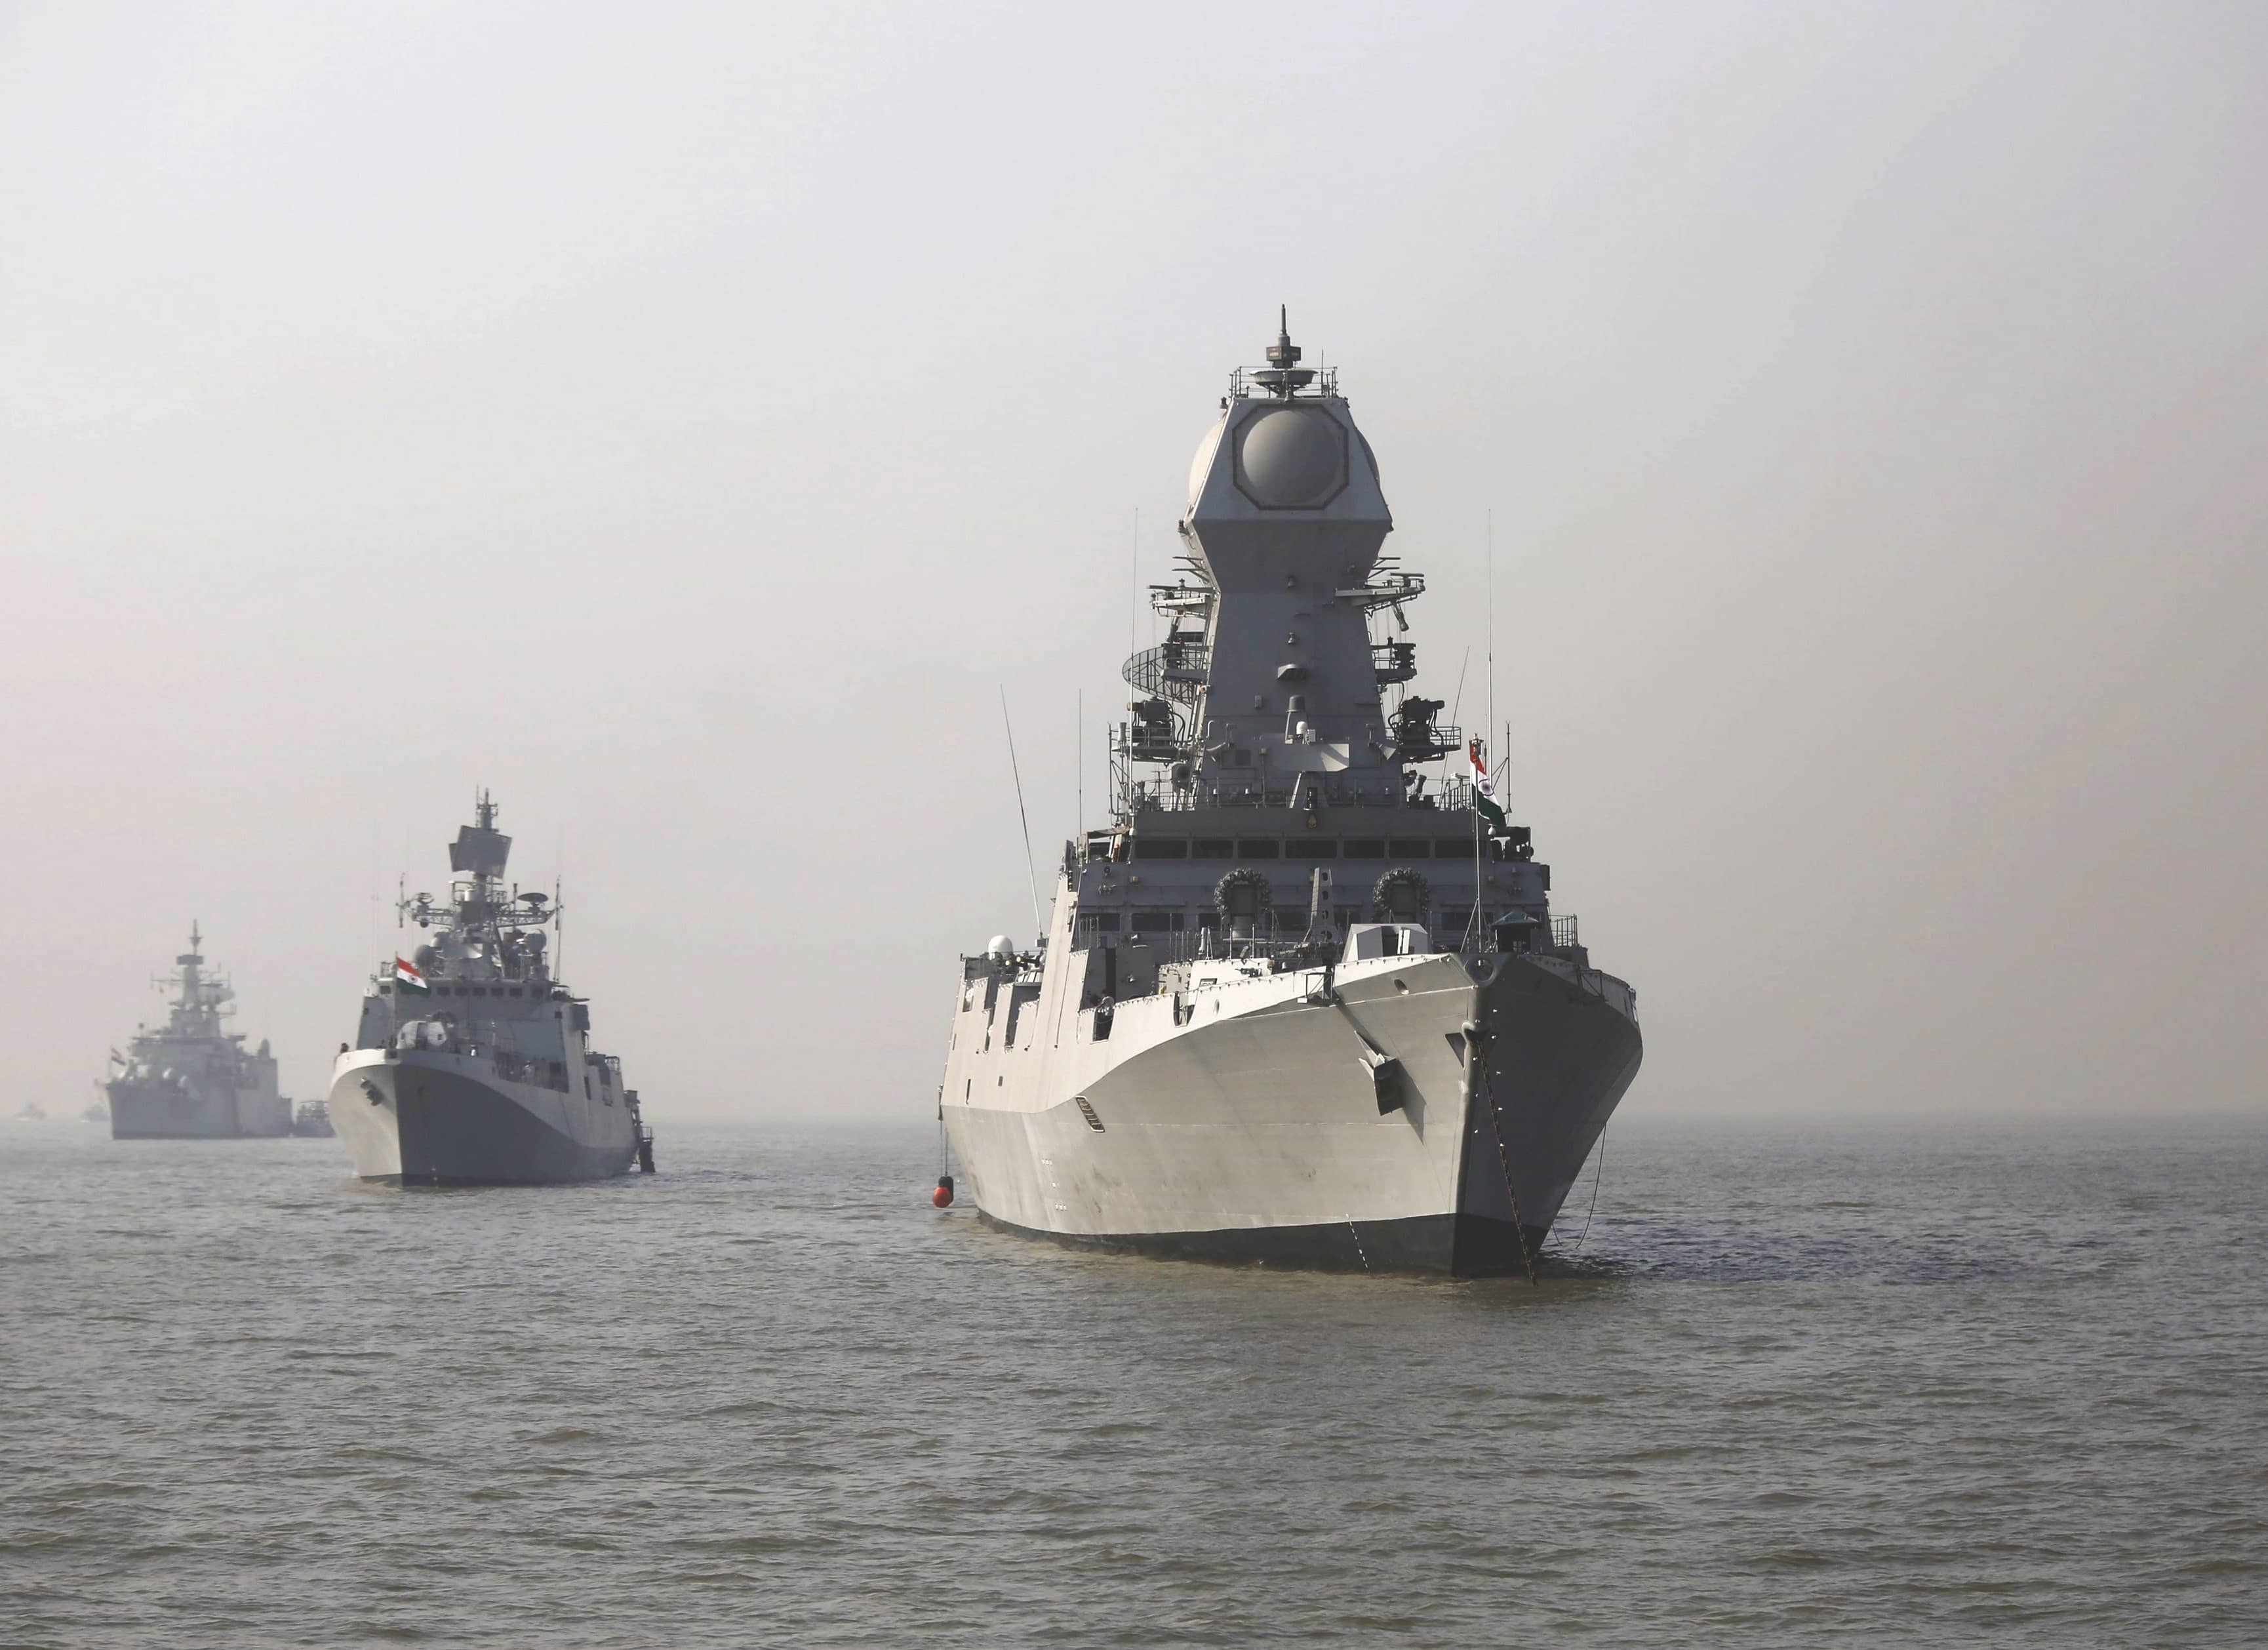 CHANGING DYNAMICS OF INDIA'S MARITIME POLICY